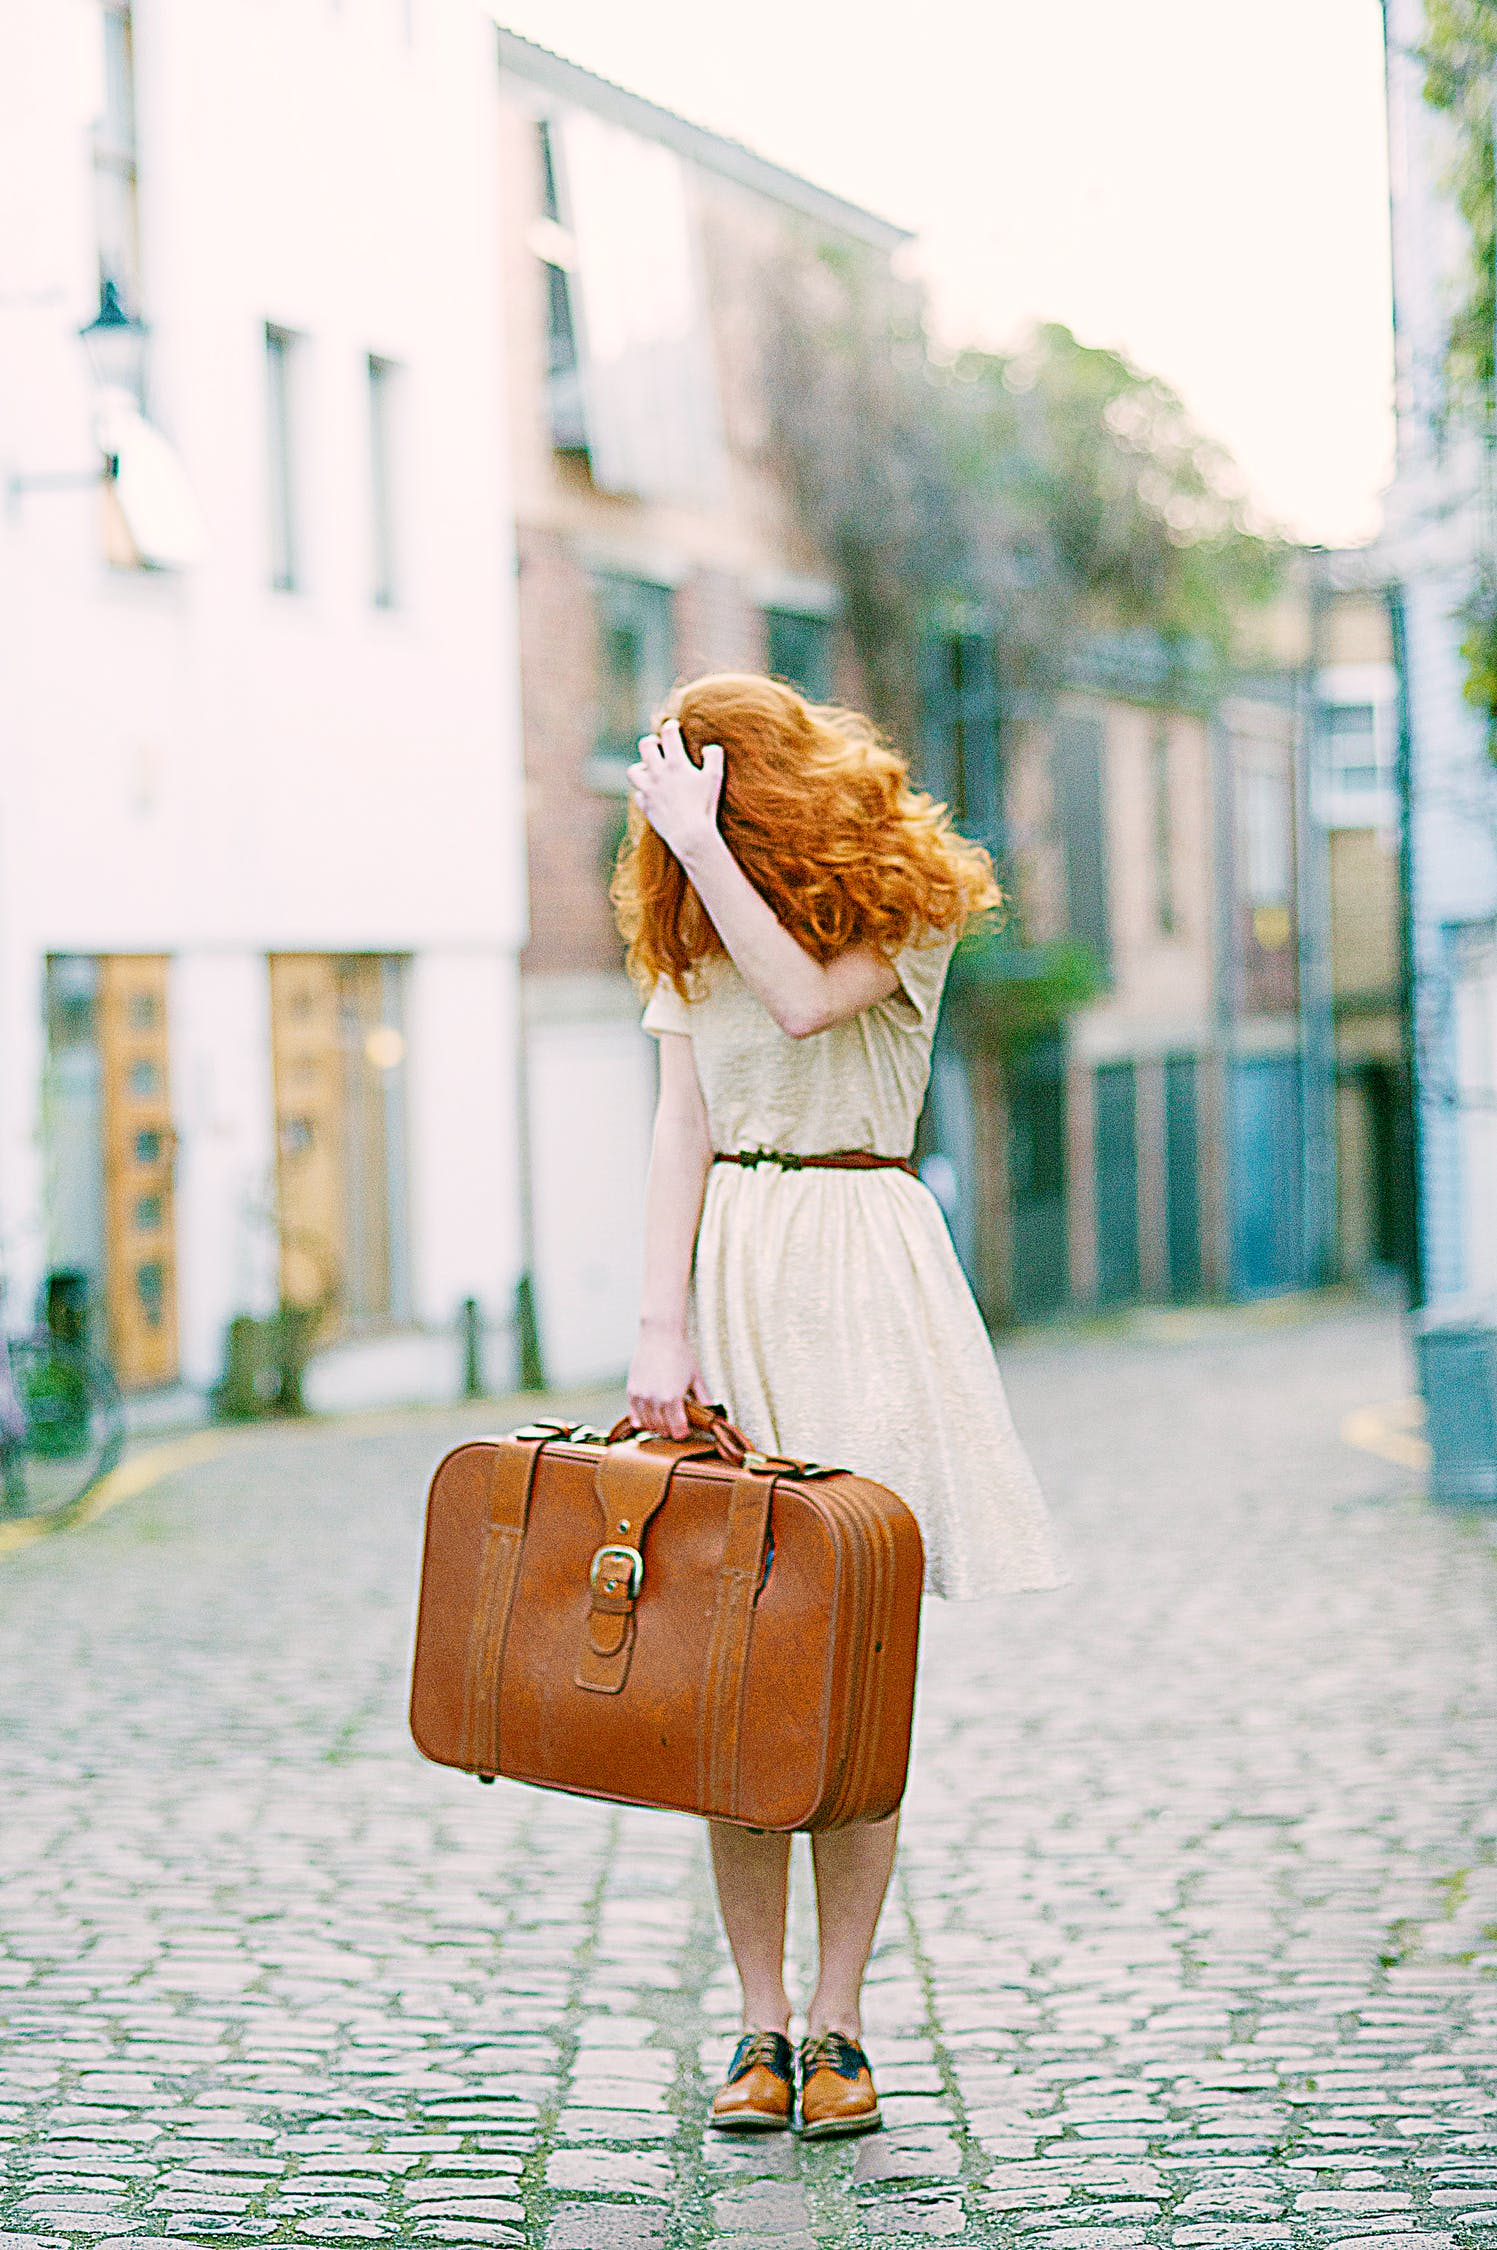 Distraught redheaded woman with a suitcase.